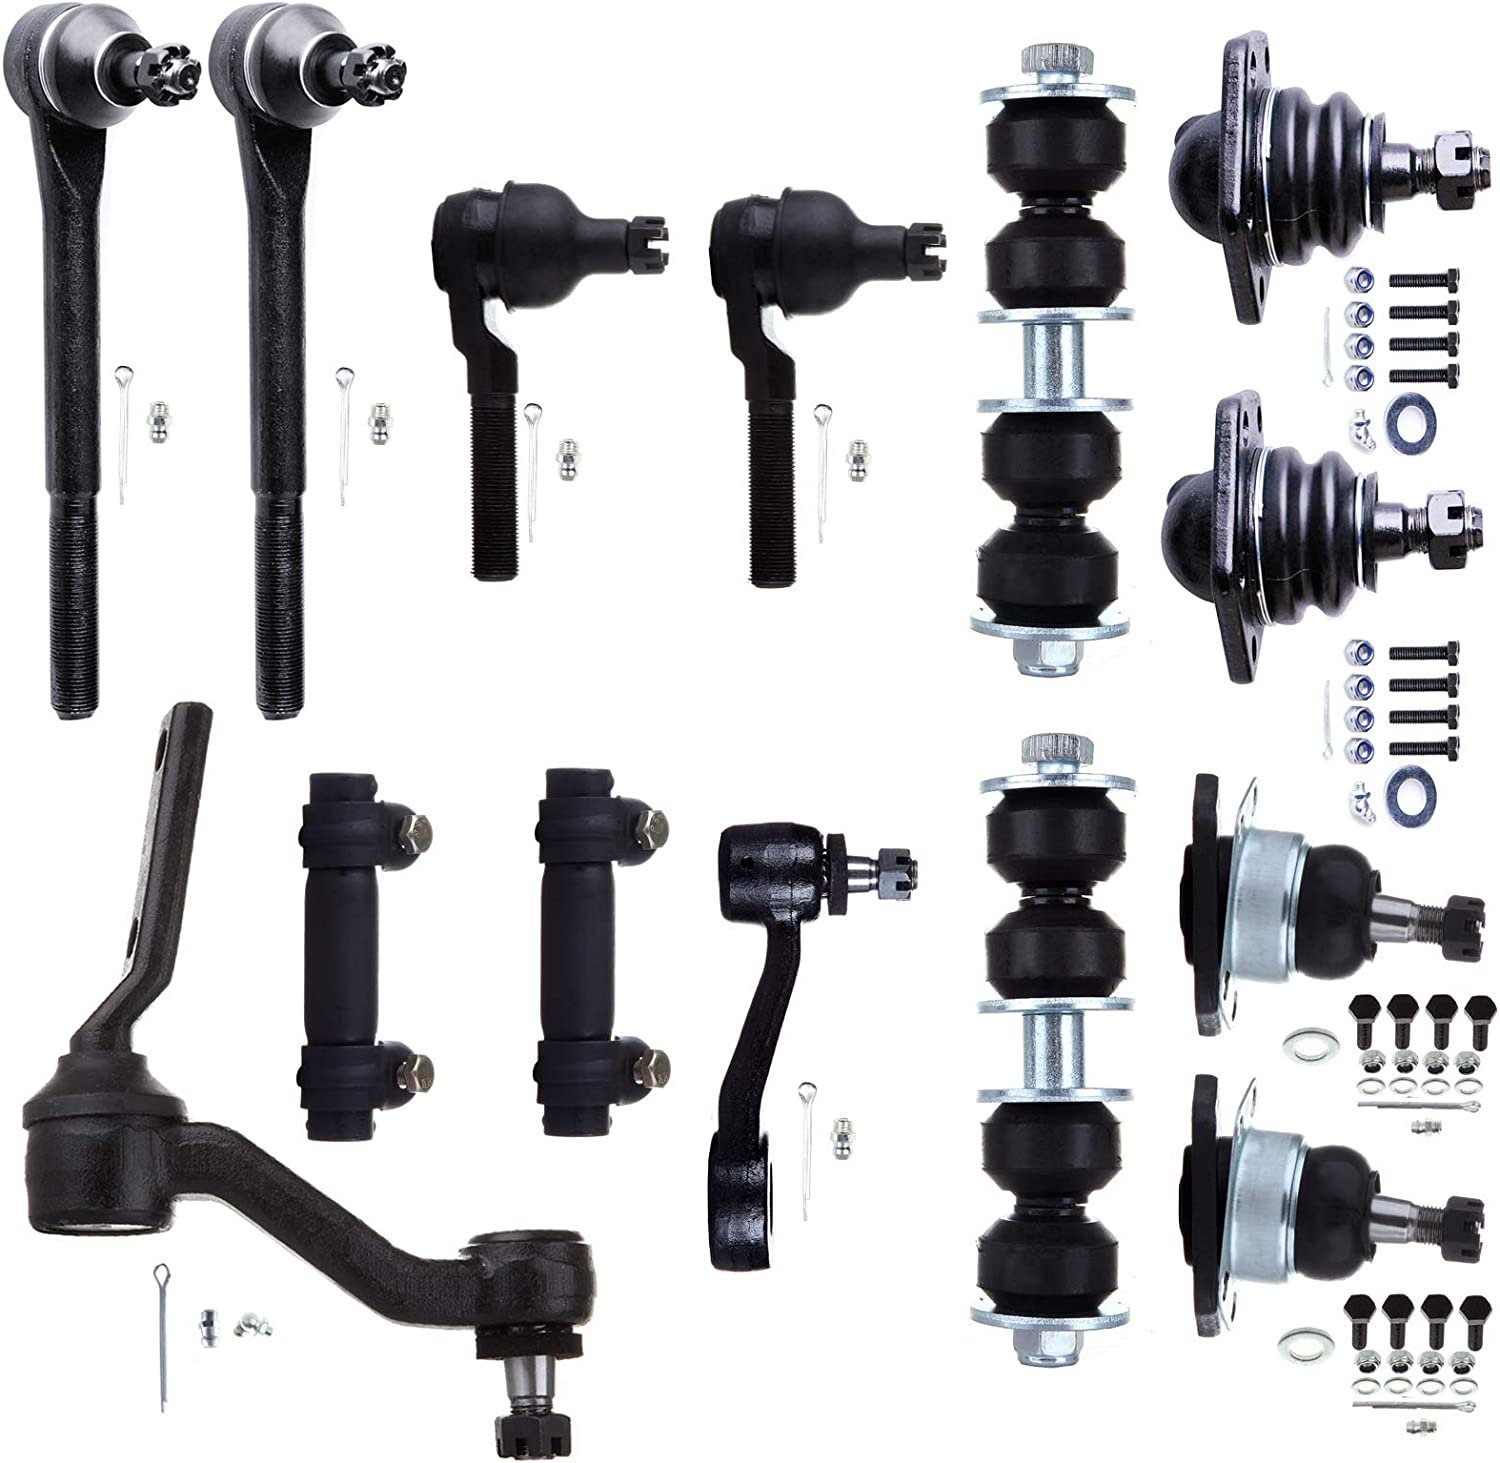 INEEDUP NEW 14 Set of Ball Joint Tie Rod Ends Front Sway Bar Links Idler Arm Pitman Arm Adjusting Sleeve Compatible with for Chevrolet Blazer S10 GMC Jimmy Sonom Isuzu Hombre Oldsmobile Bravada